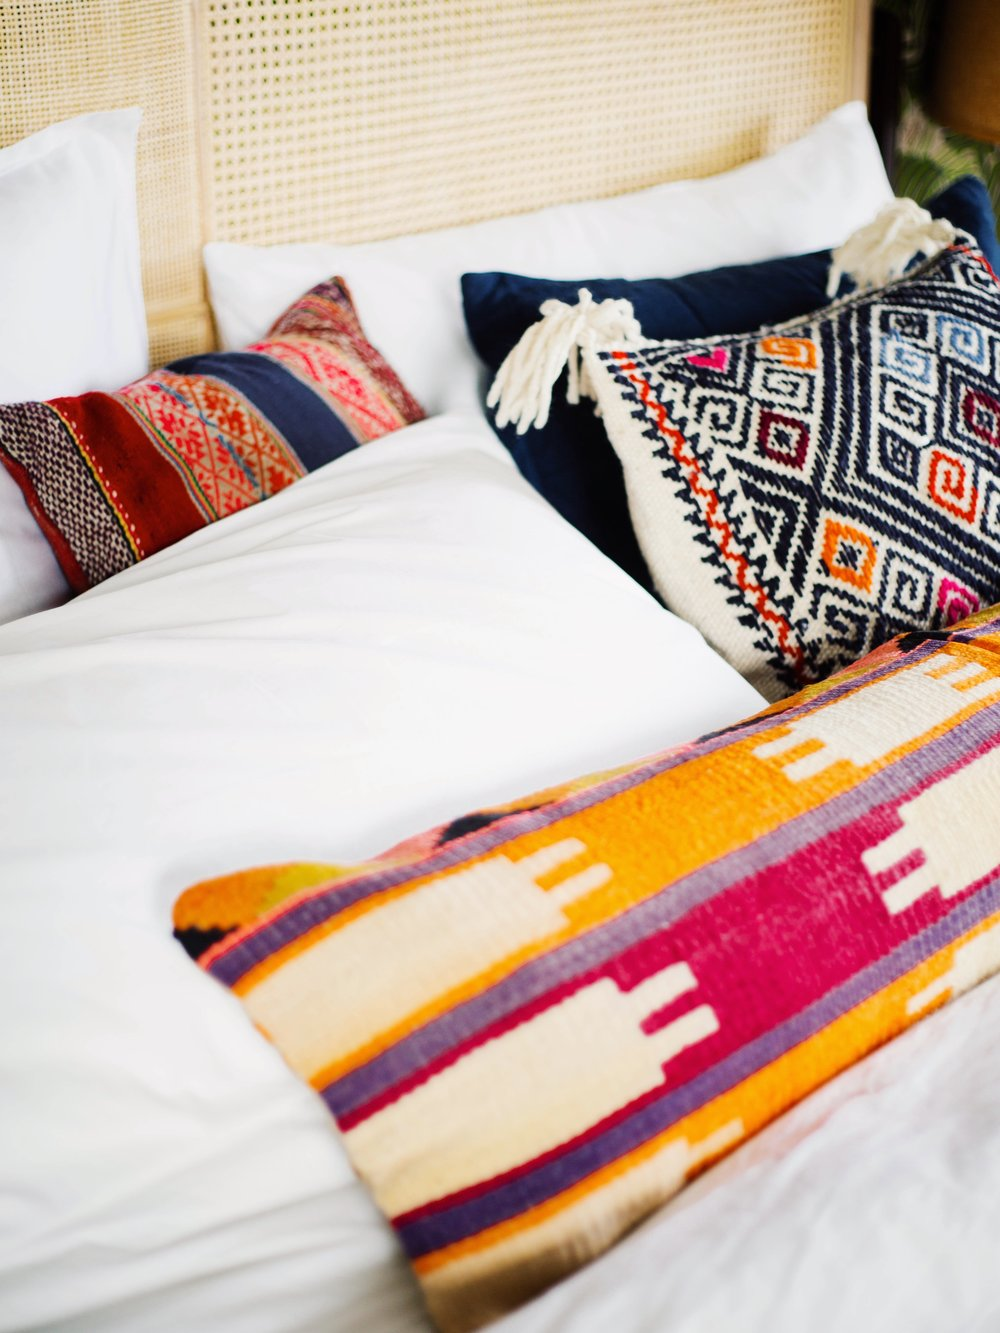 Old Brand New • 3 Ways to Style Your Pillows on a King Size Bed